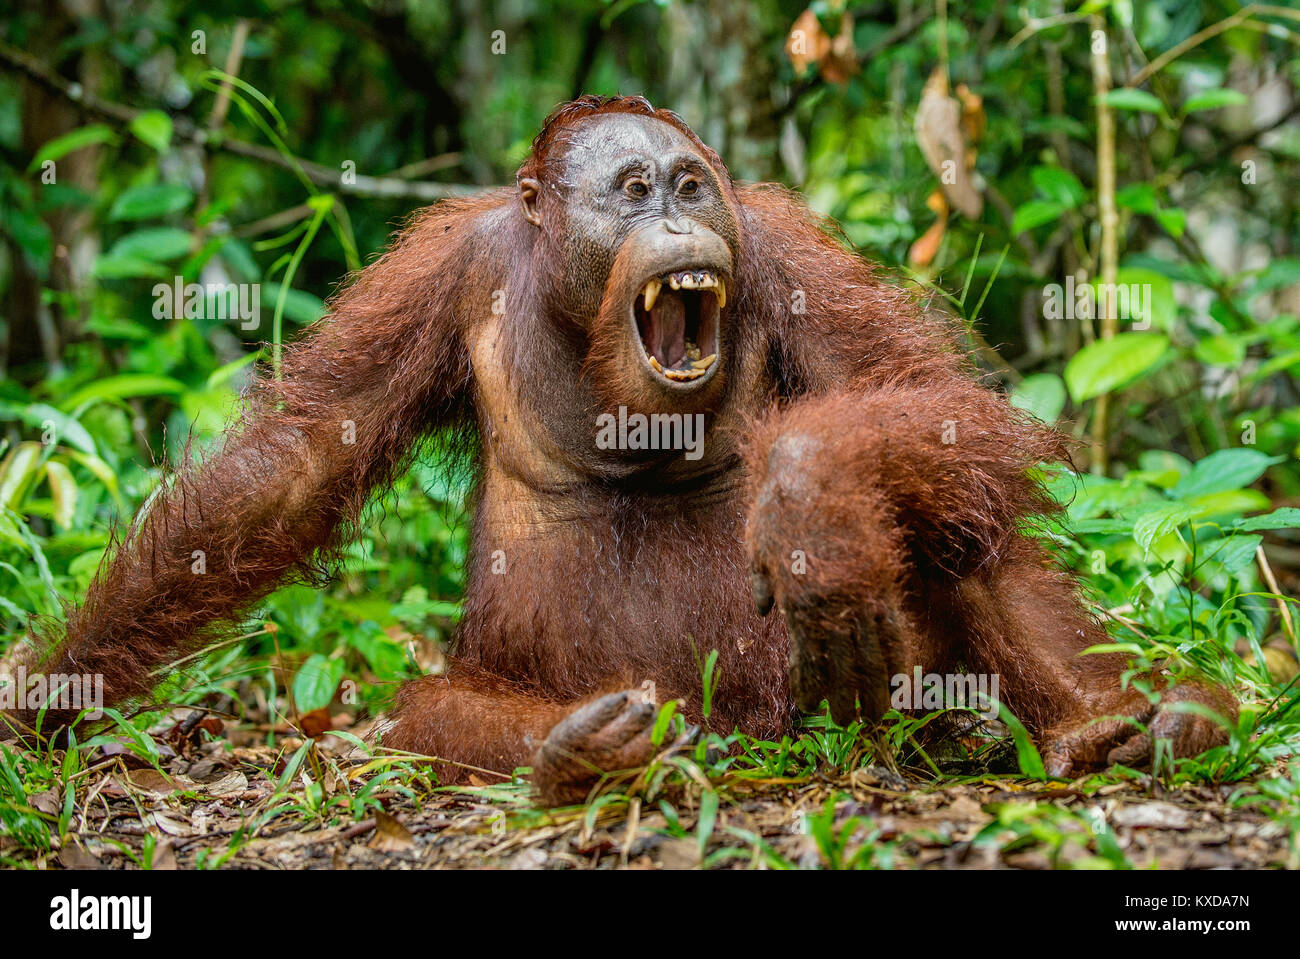 A close up portrait of the Bornean orangutan (Pongo pygmaeus) with open mouth. Wild nature. Central Bornean orangutan - Stock Image